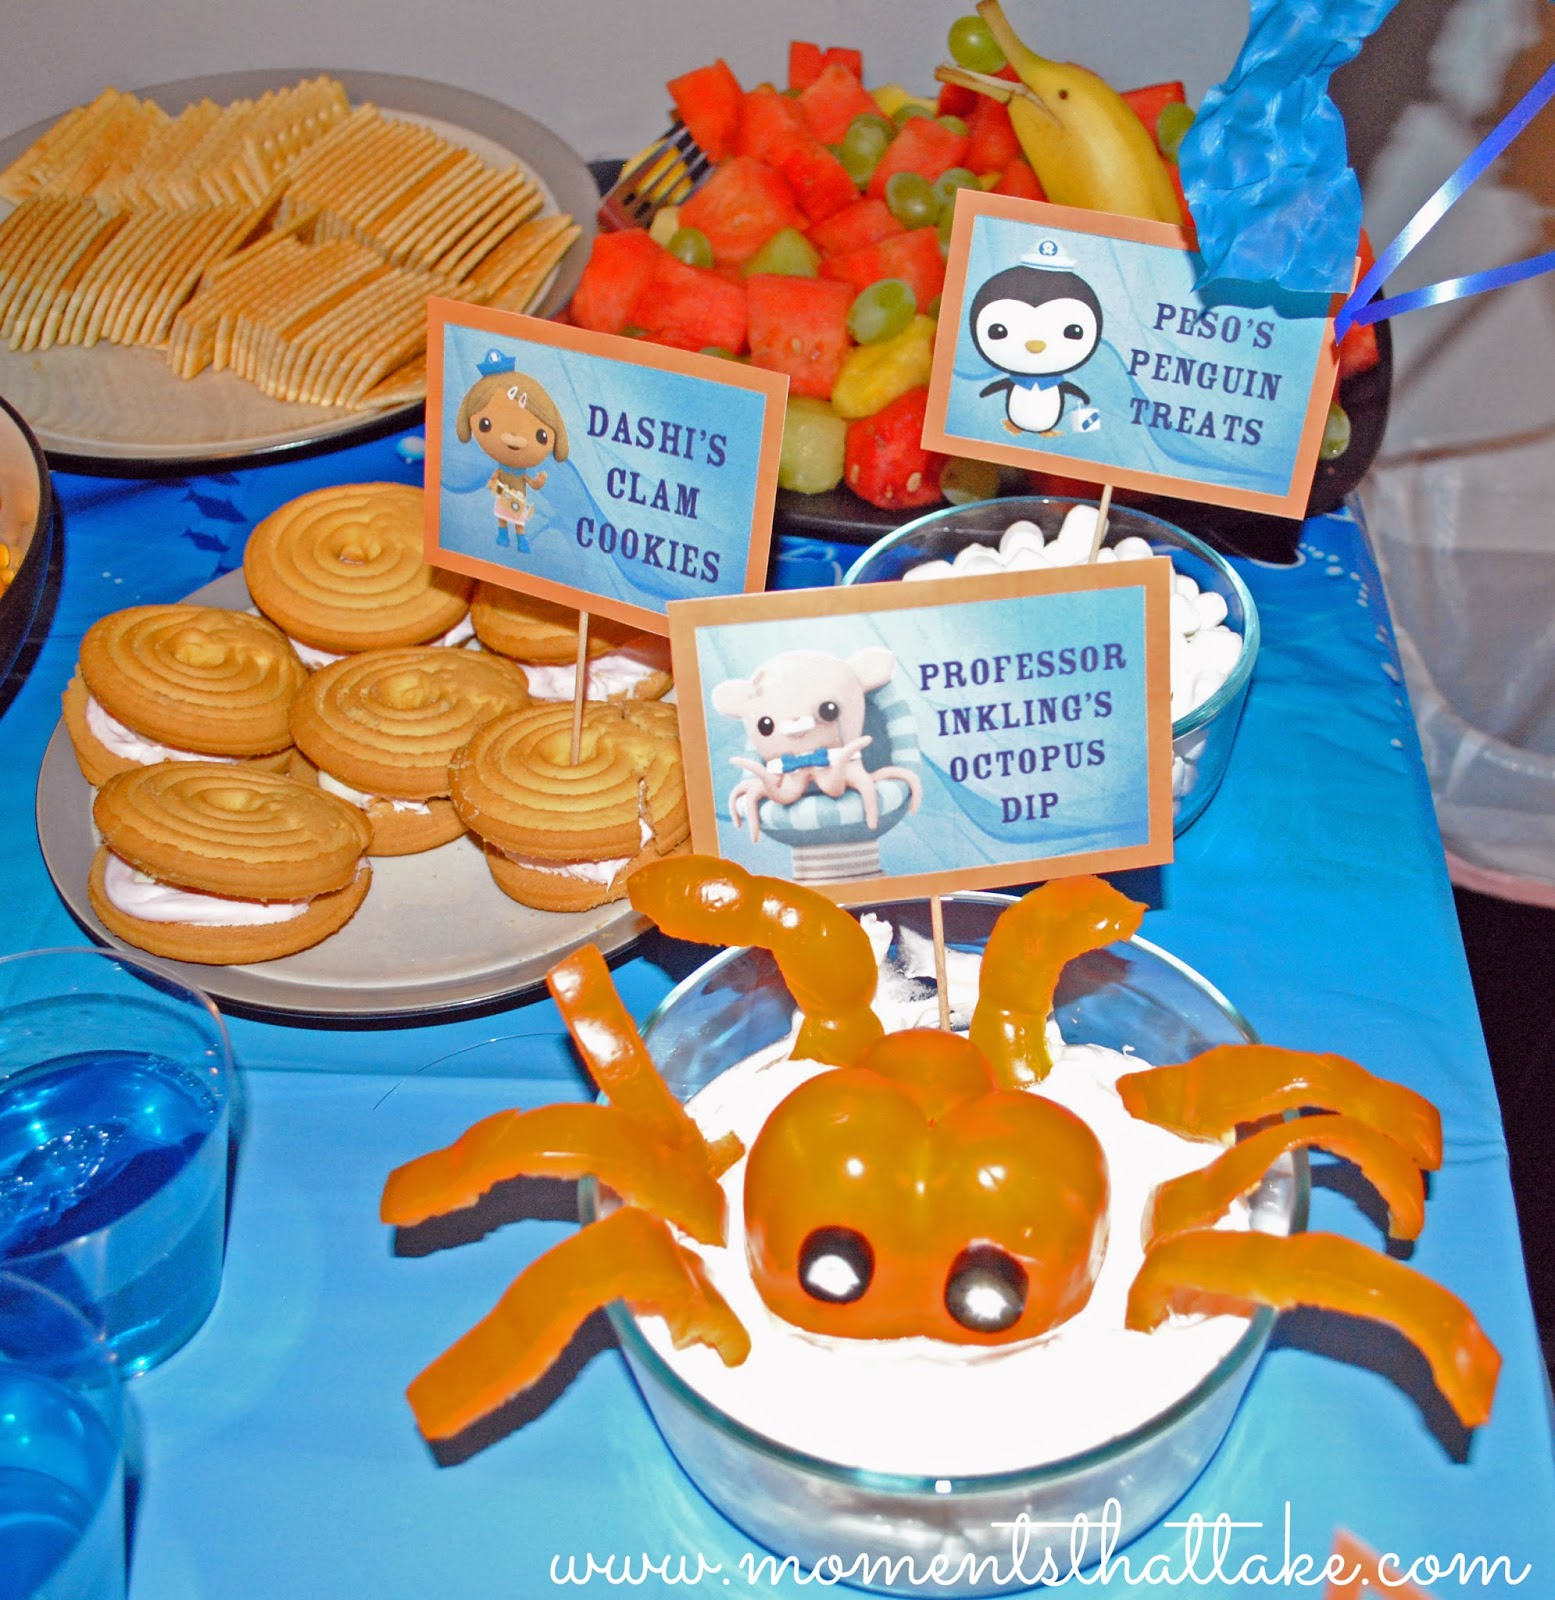 Year Old Birthday Party Food Ideas